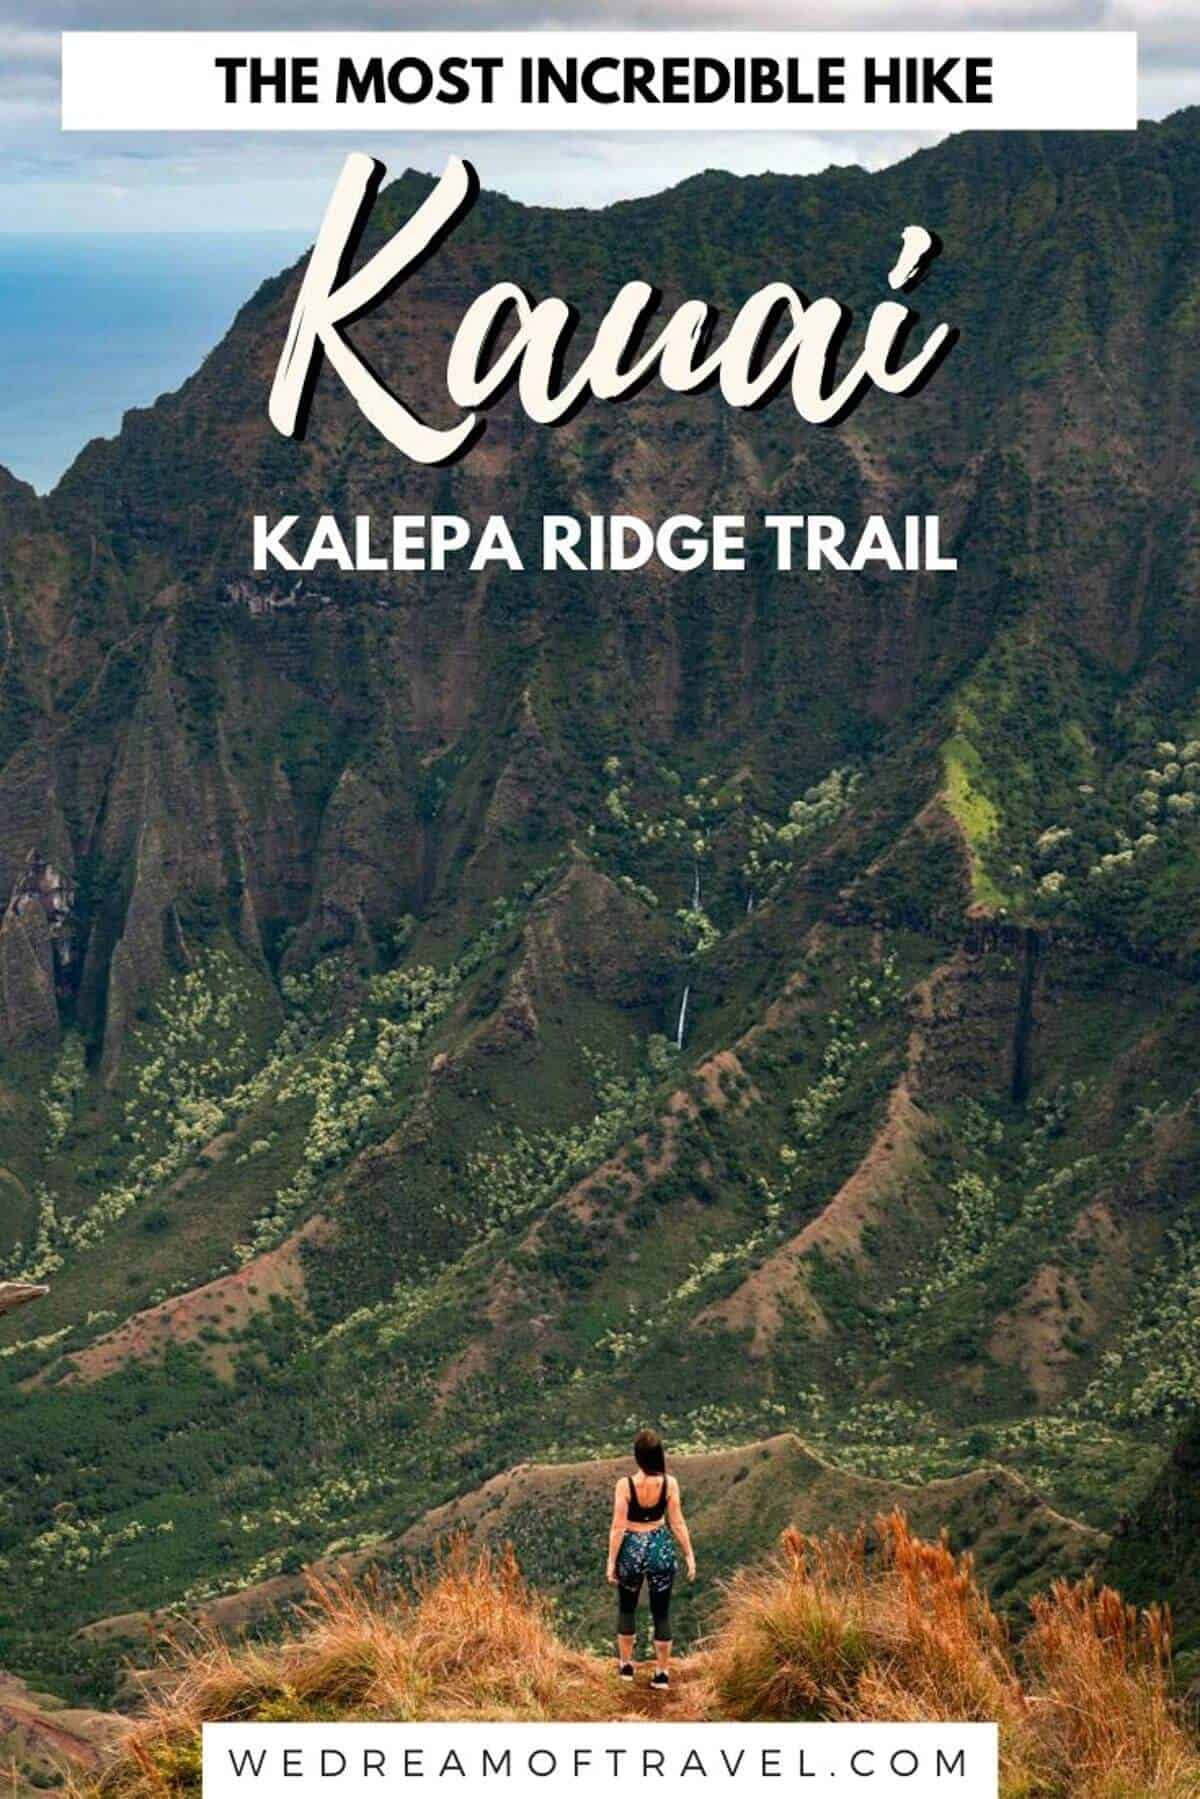 Planning to hike the Kalepa Ridge Trail in Kauai, Hawaii? Discover, from our first hand experience, everything you need to know about this epic hike and how to prepare for it.  Complete this challenging and exciting hike and you'll be rewarded the most incredible, scenic views over the Na Pali Coast.